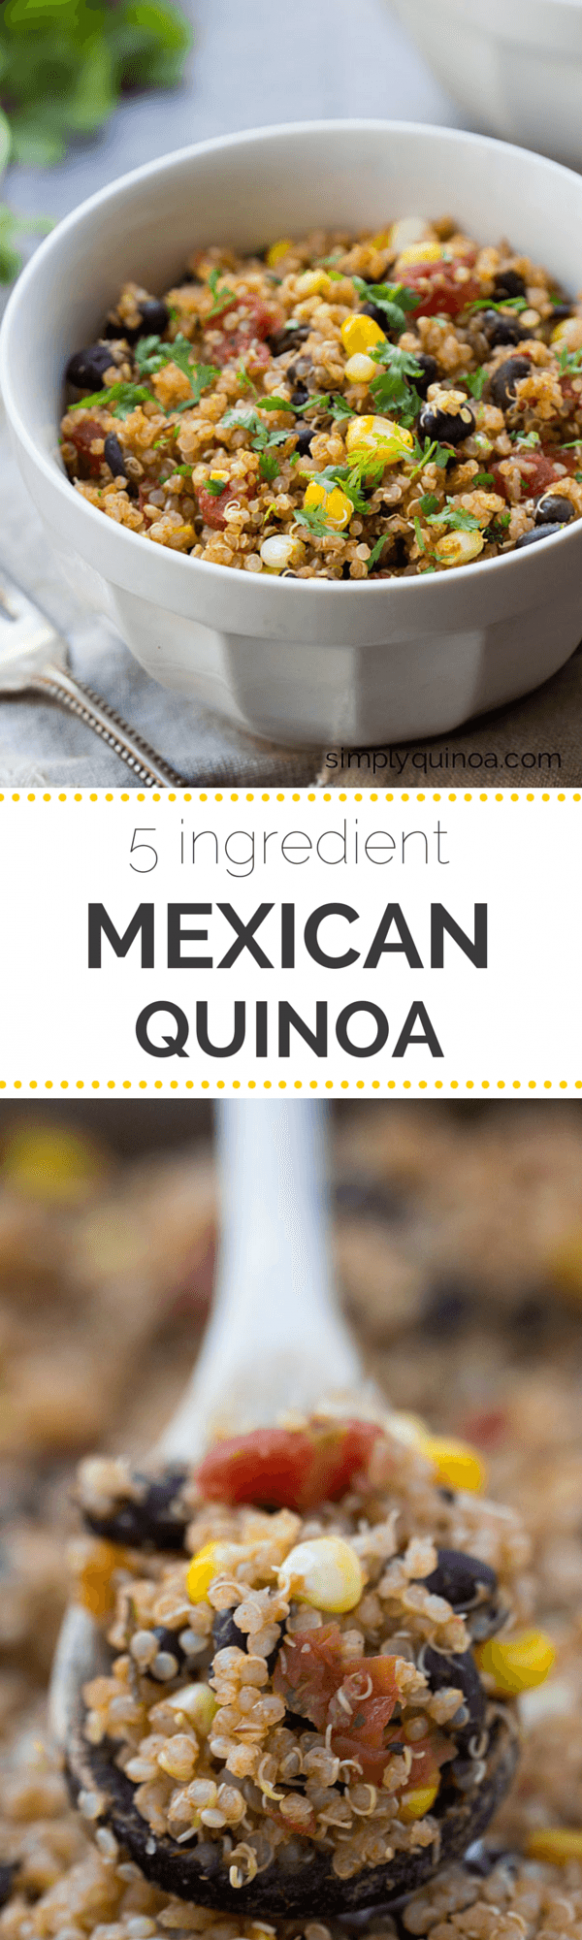 5-ingredient Mexican Quinoa - Simply Quinoa